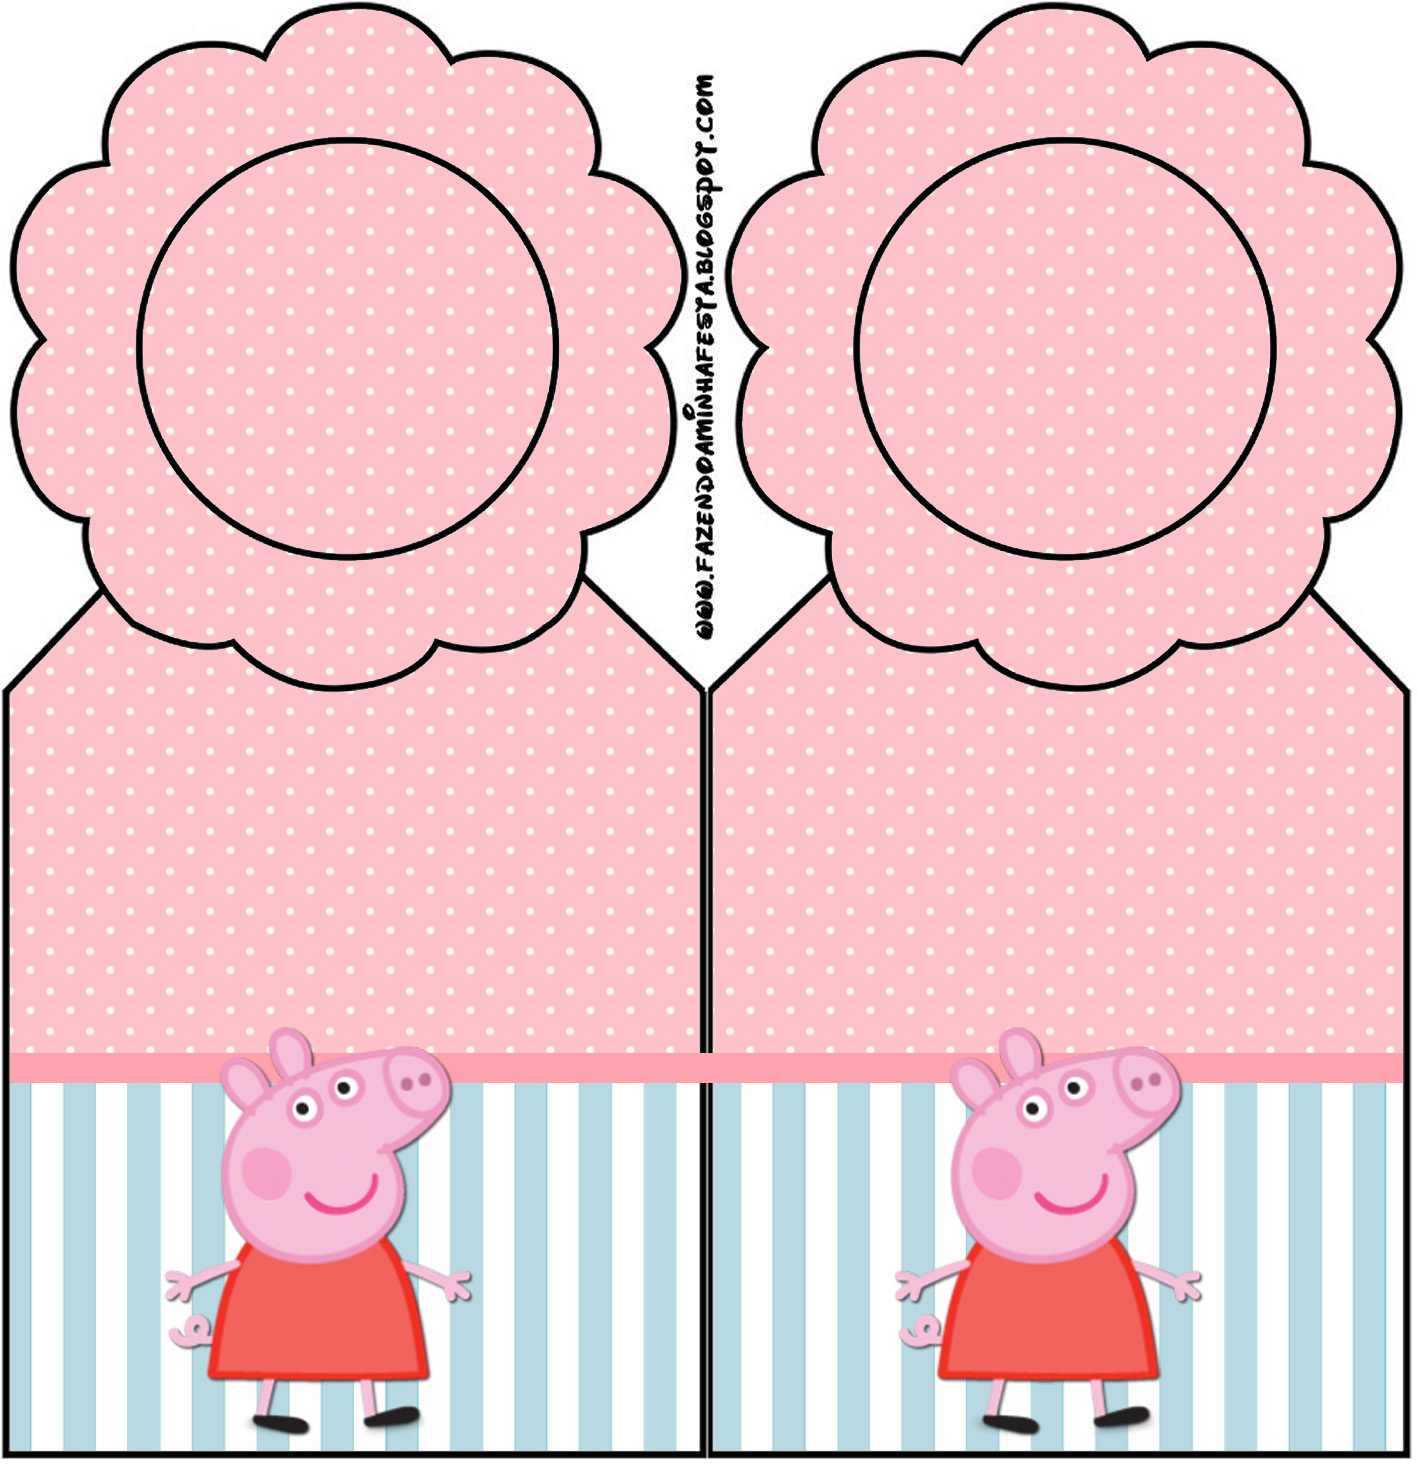 Peppa Pig: Party Free Printables. - Oh My Fiesta! in english